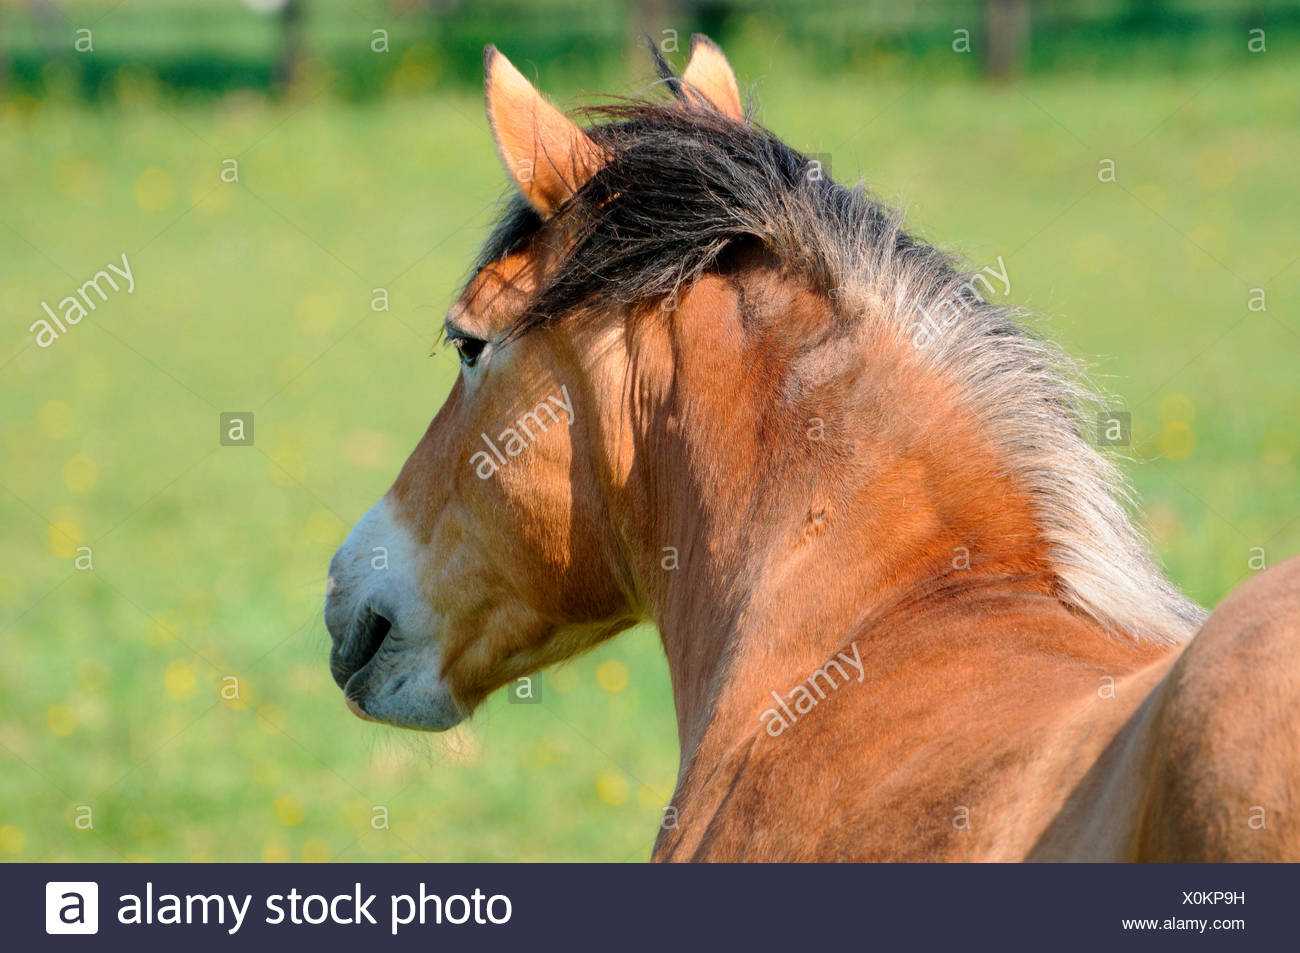 Draft Horse / Draught Horse, neck, withers, mane - Stock Image